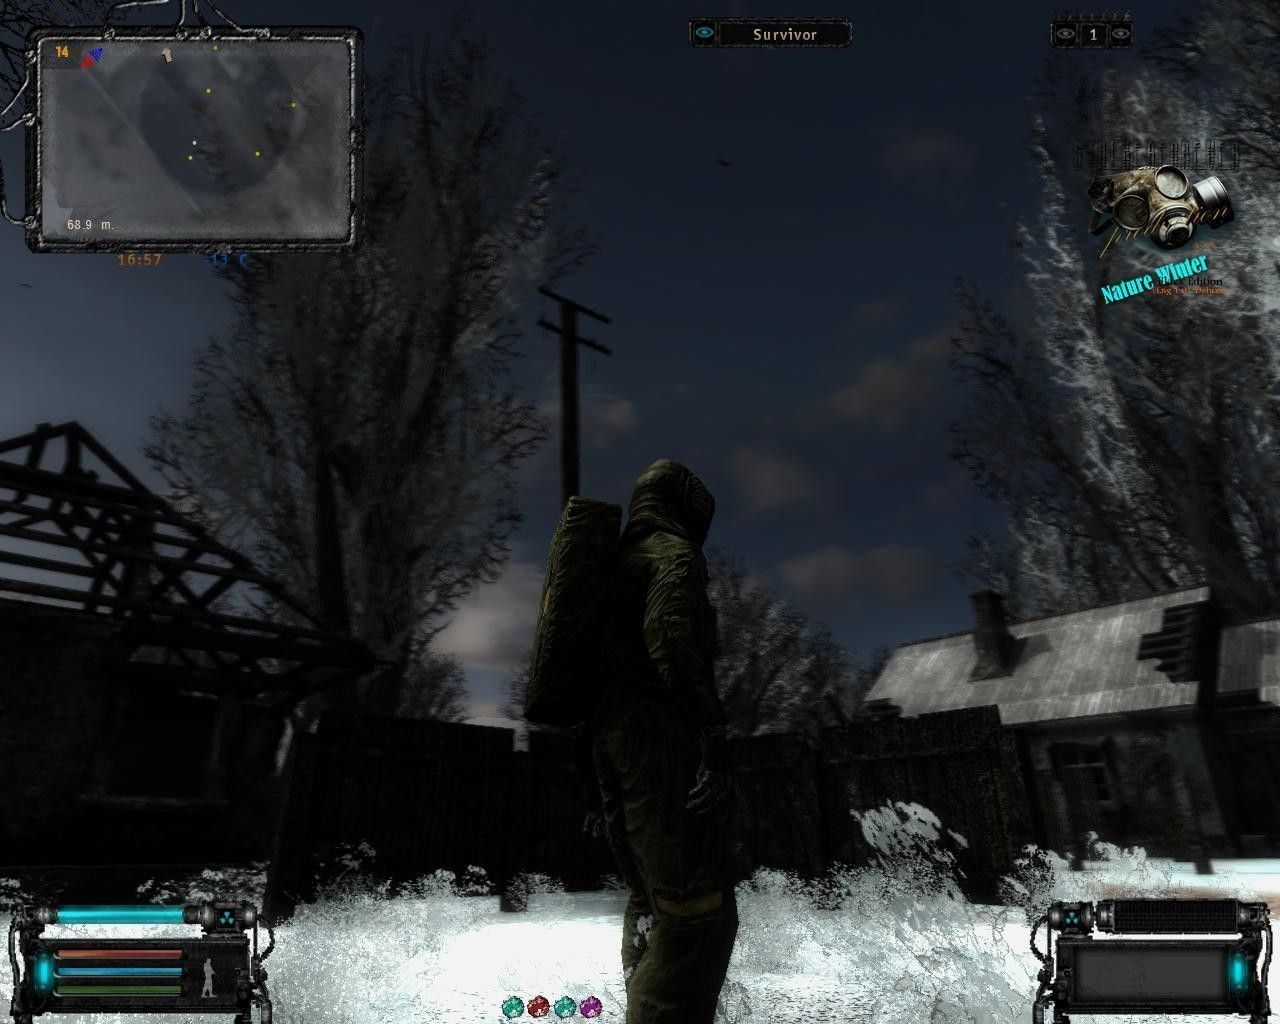 Nature Winter 2.3 Black Edition (eng 1.01 Deluxe) Images Gallery! Serie:1# Ss_bou48